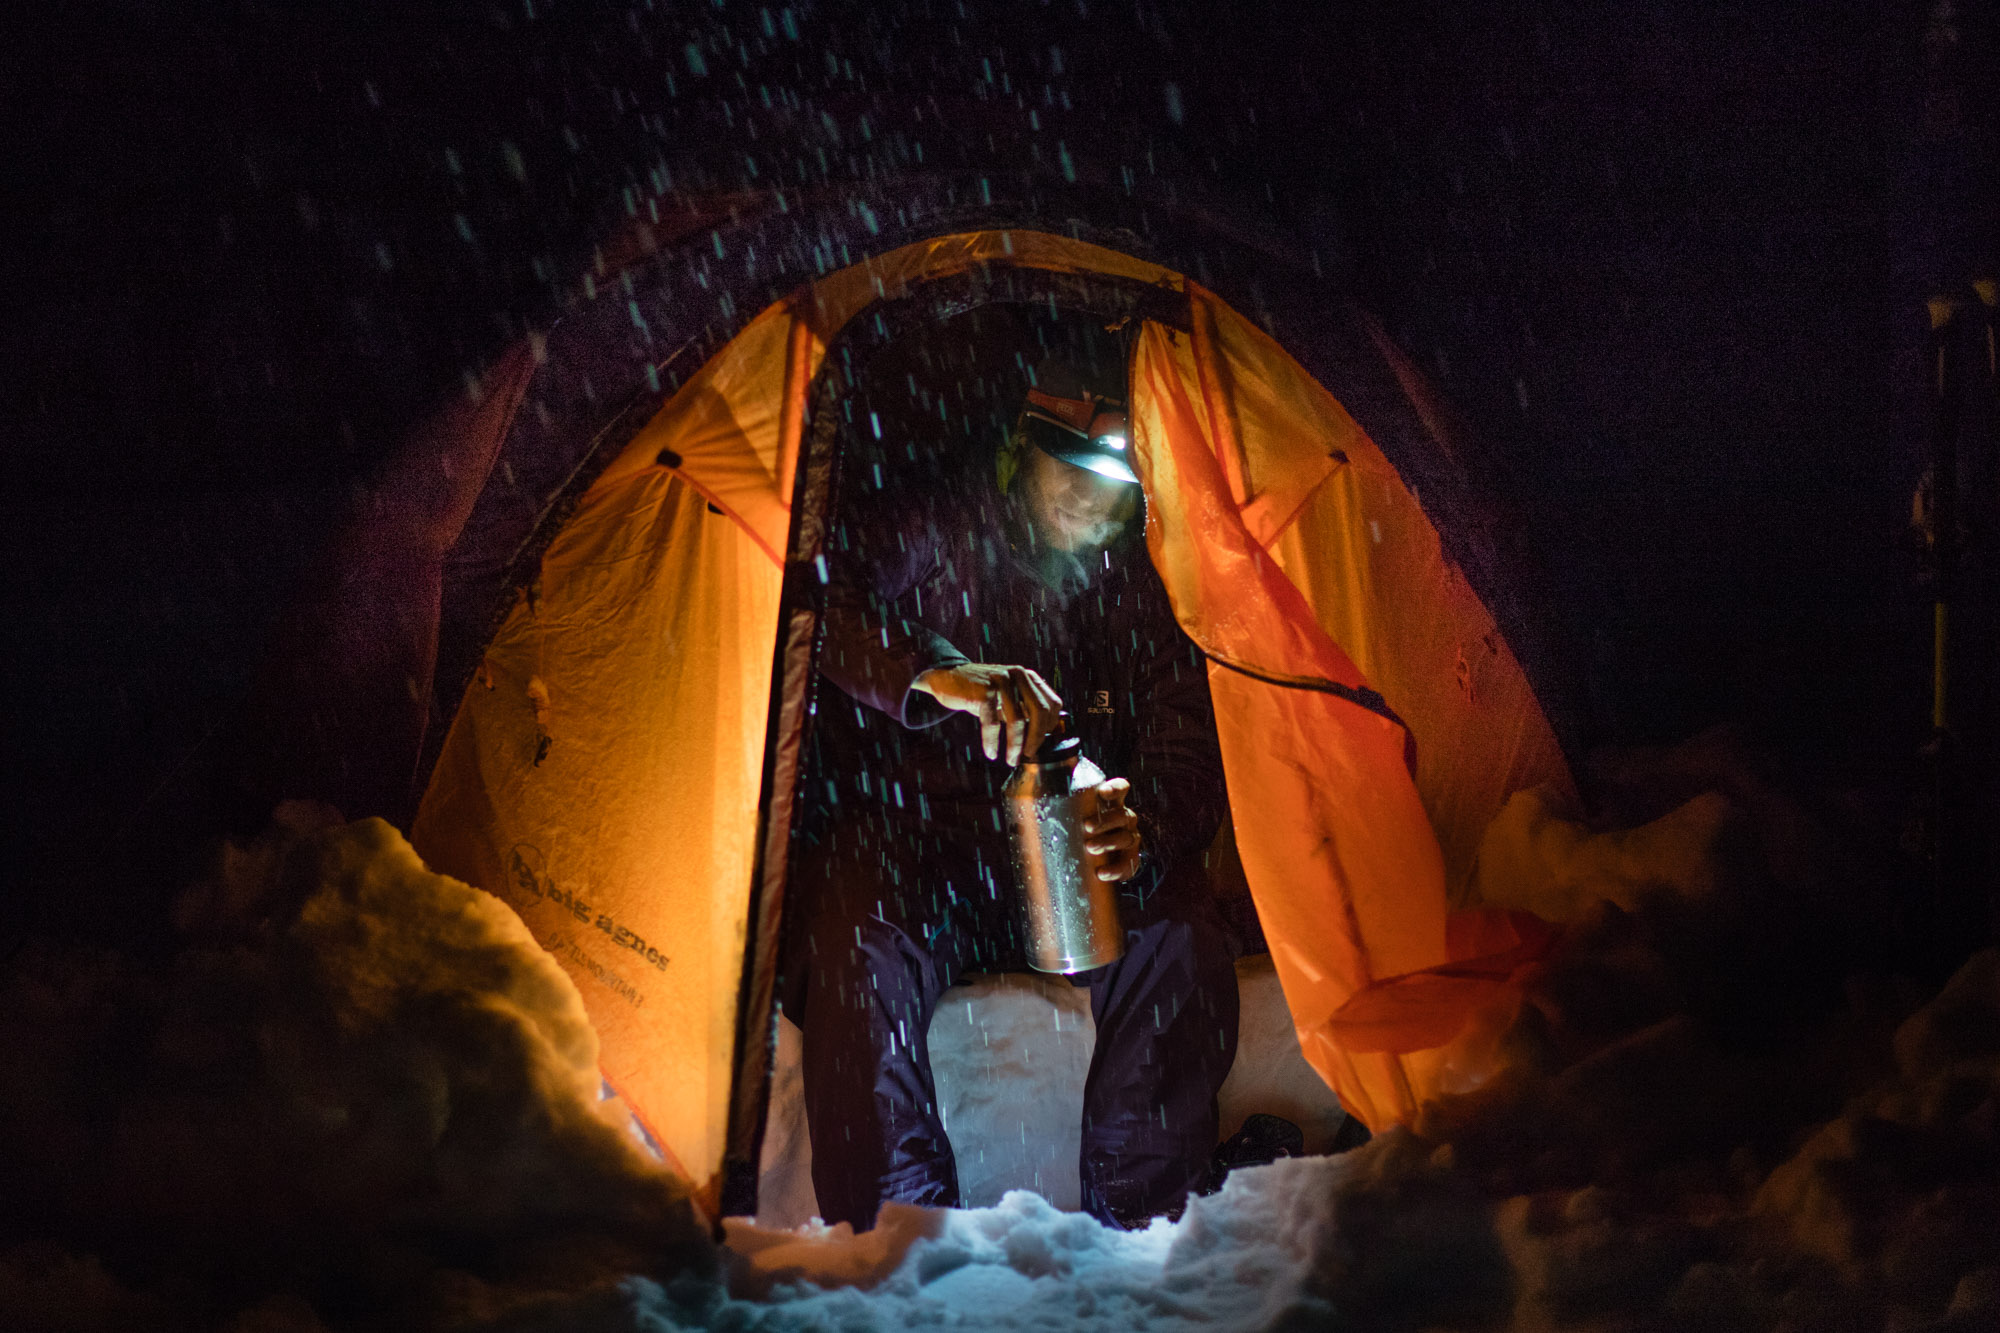 Skier Cody Townsend | Winter Camp Lifestyle Photos